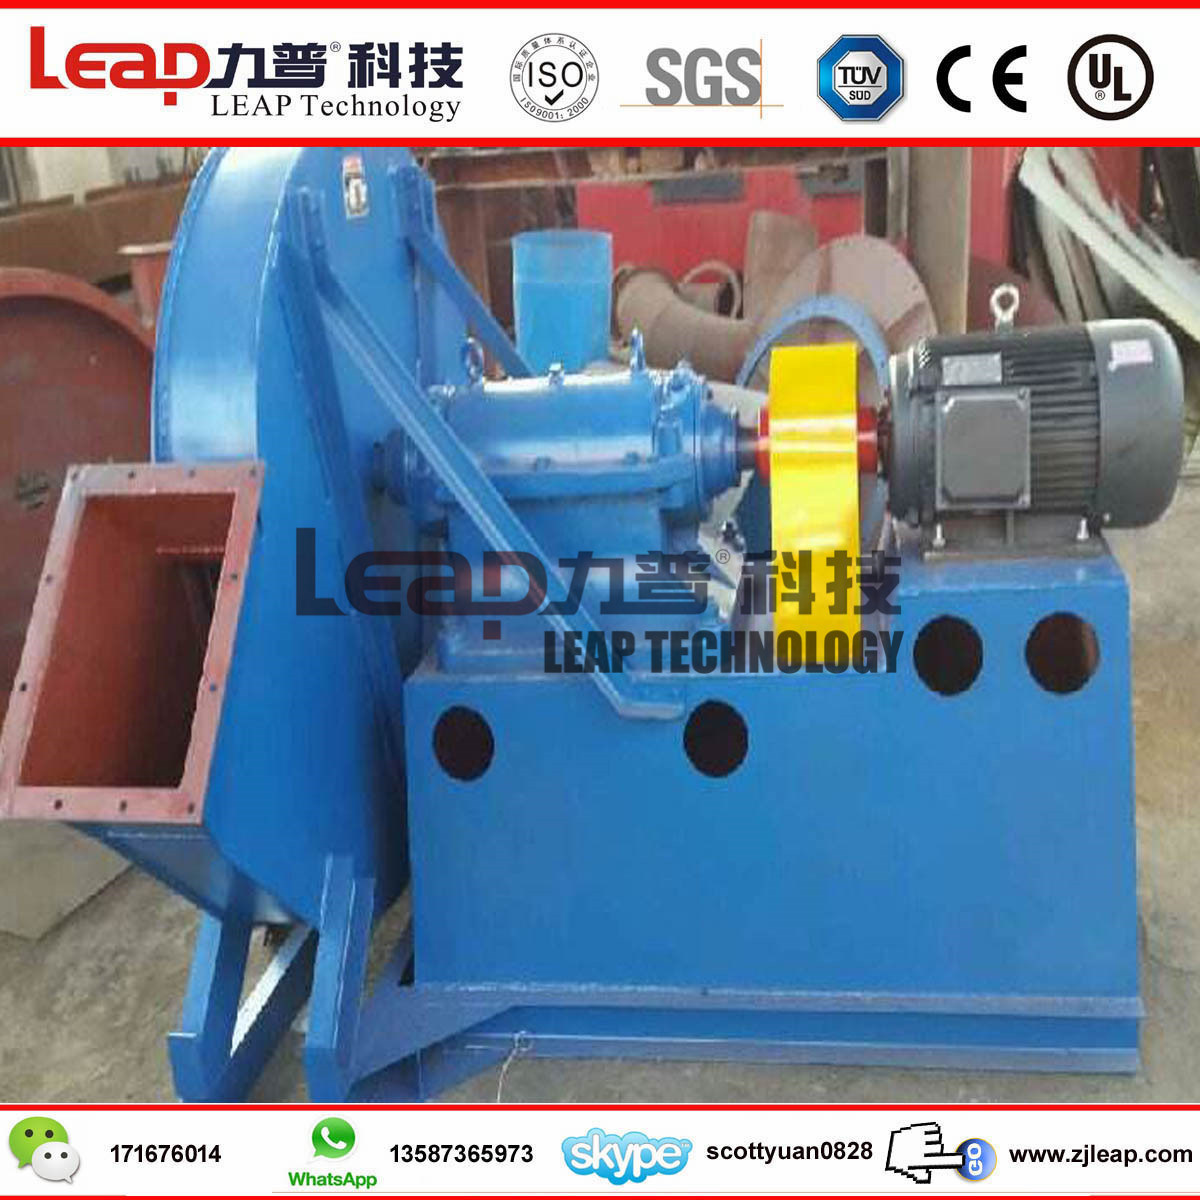 China Carbon Steel Large Airflow Centrifugal Fan for Industrial ...